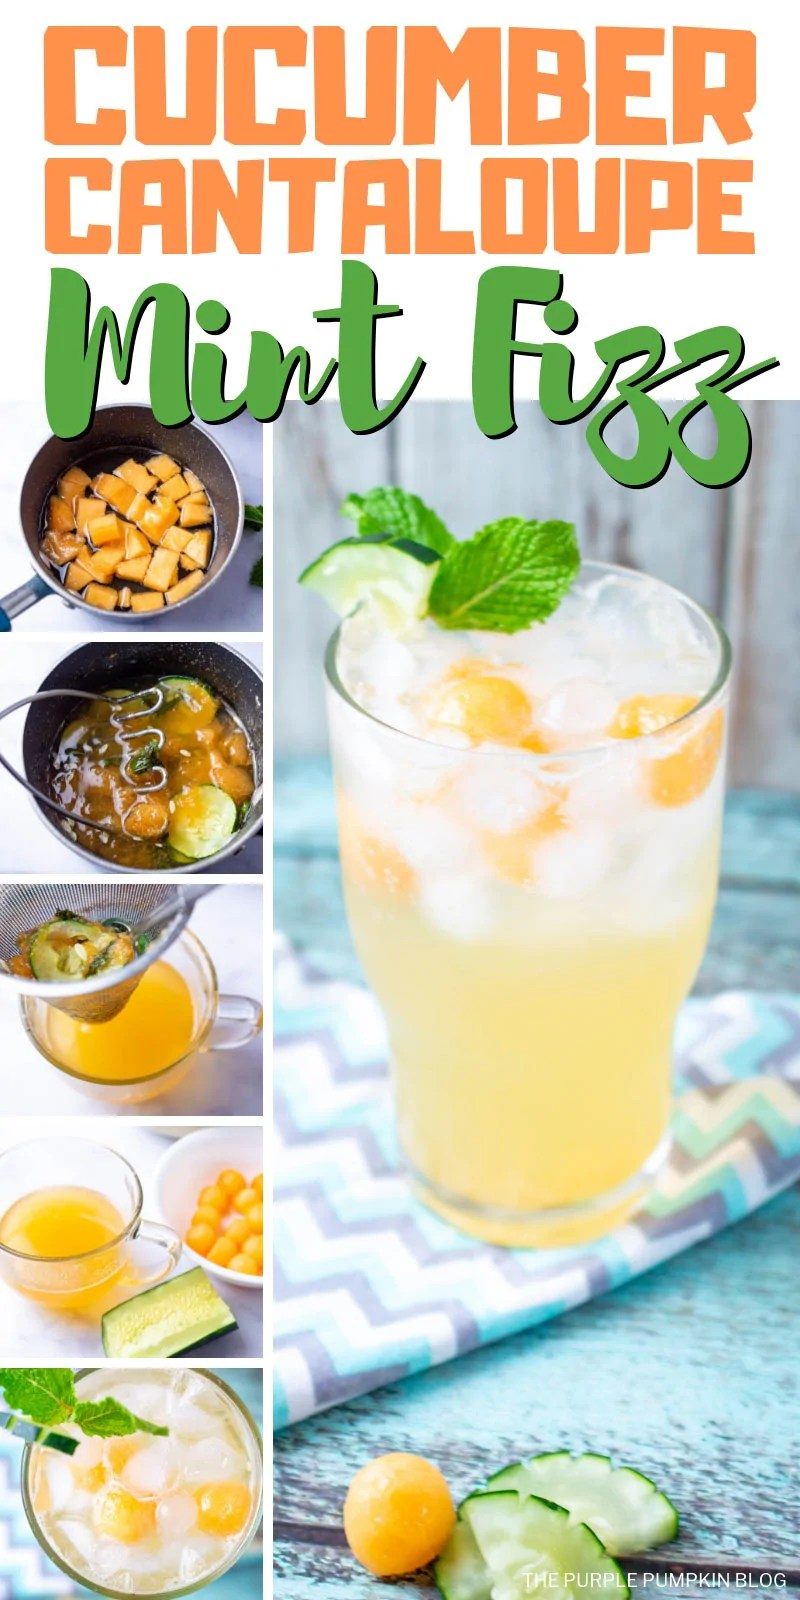 Cucumber Cantaloupe Mint Fizz - collage of images demonstrating how to make this cocktail.